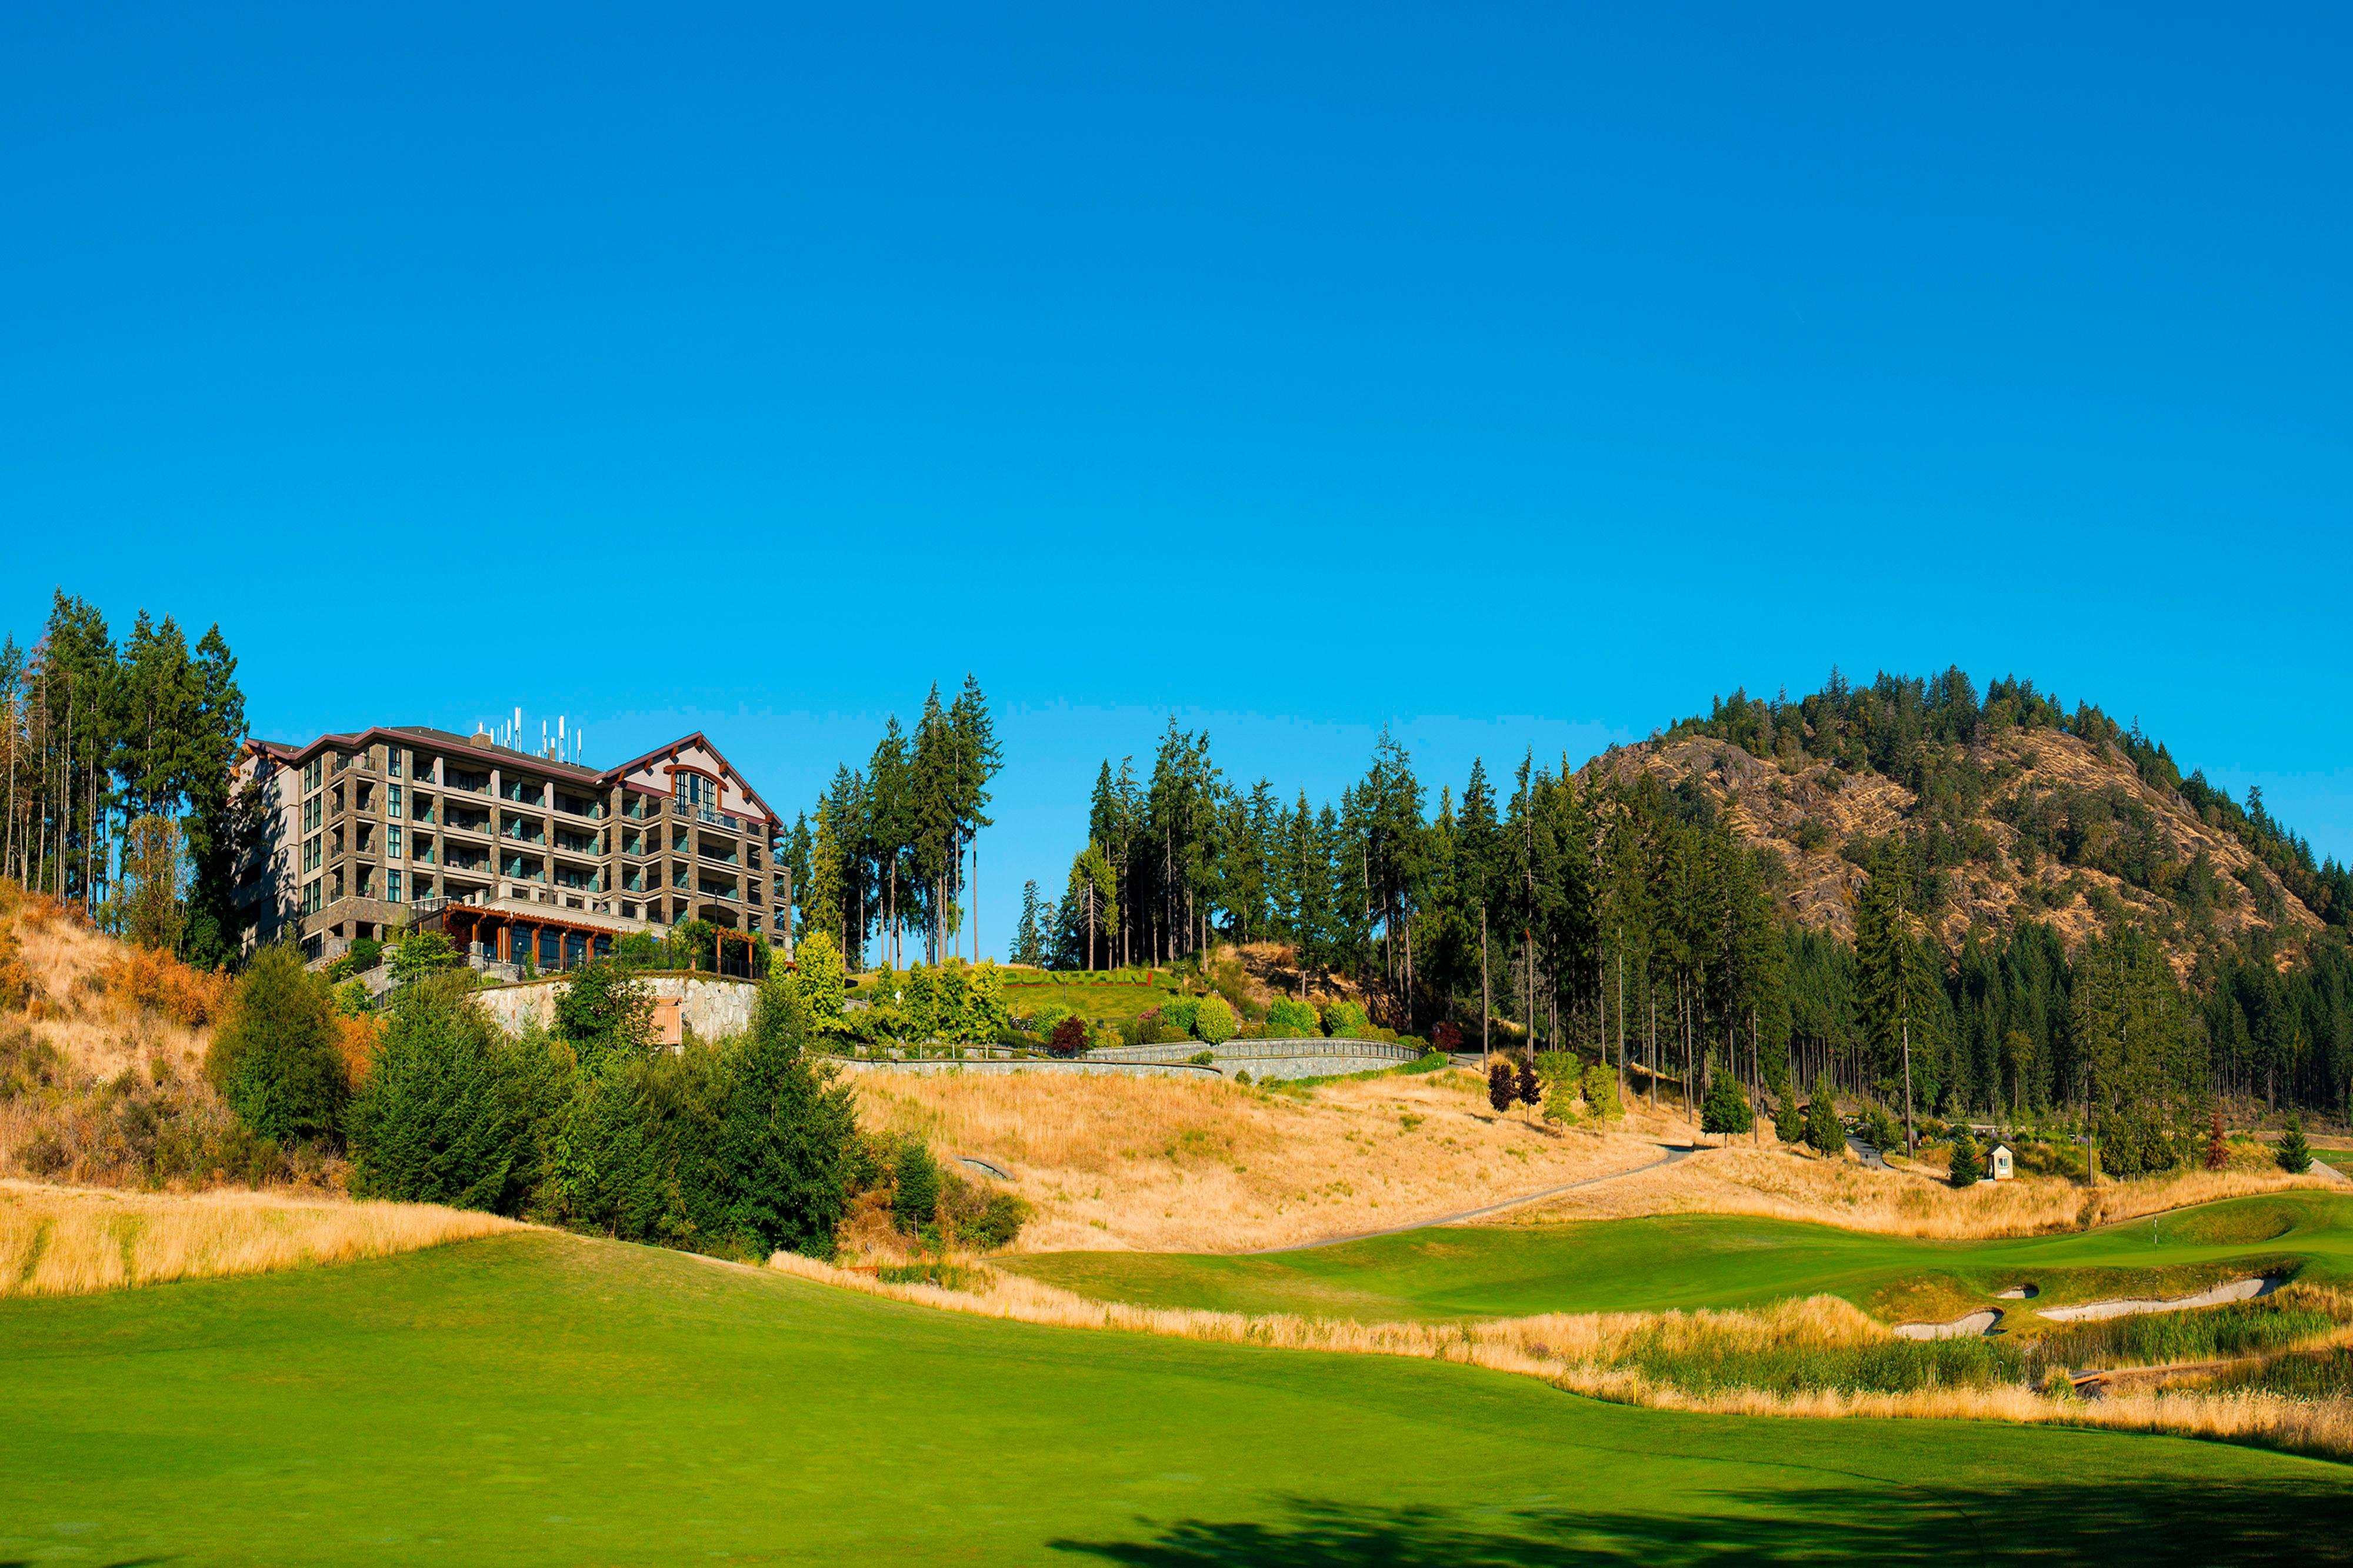 The Westin Bear Mountain Resort & Spa